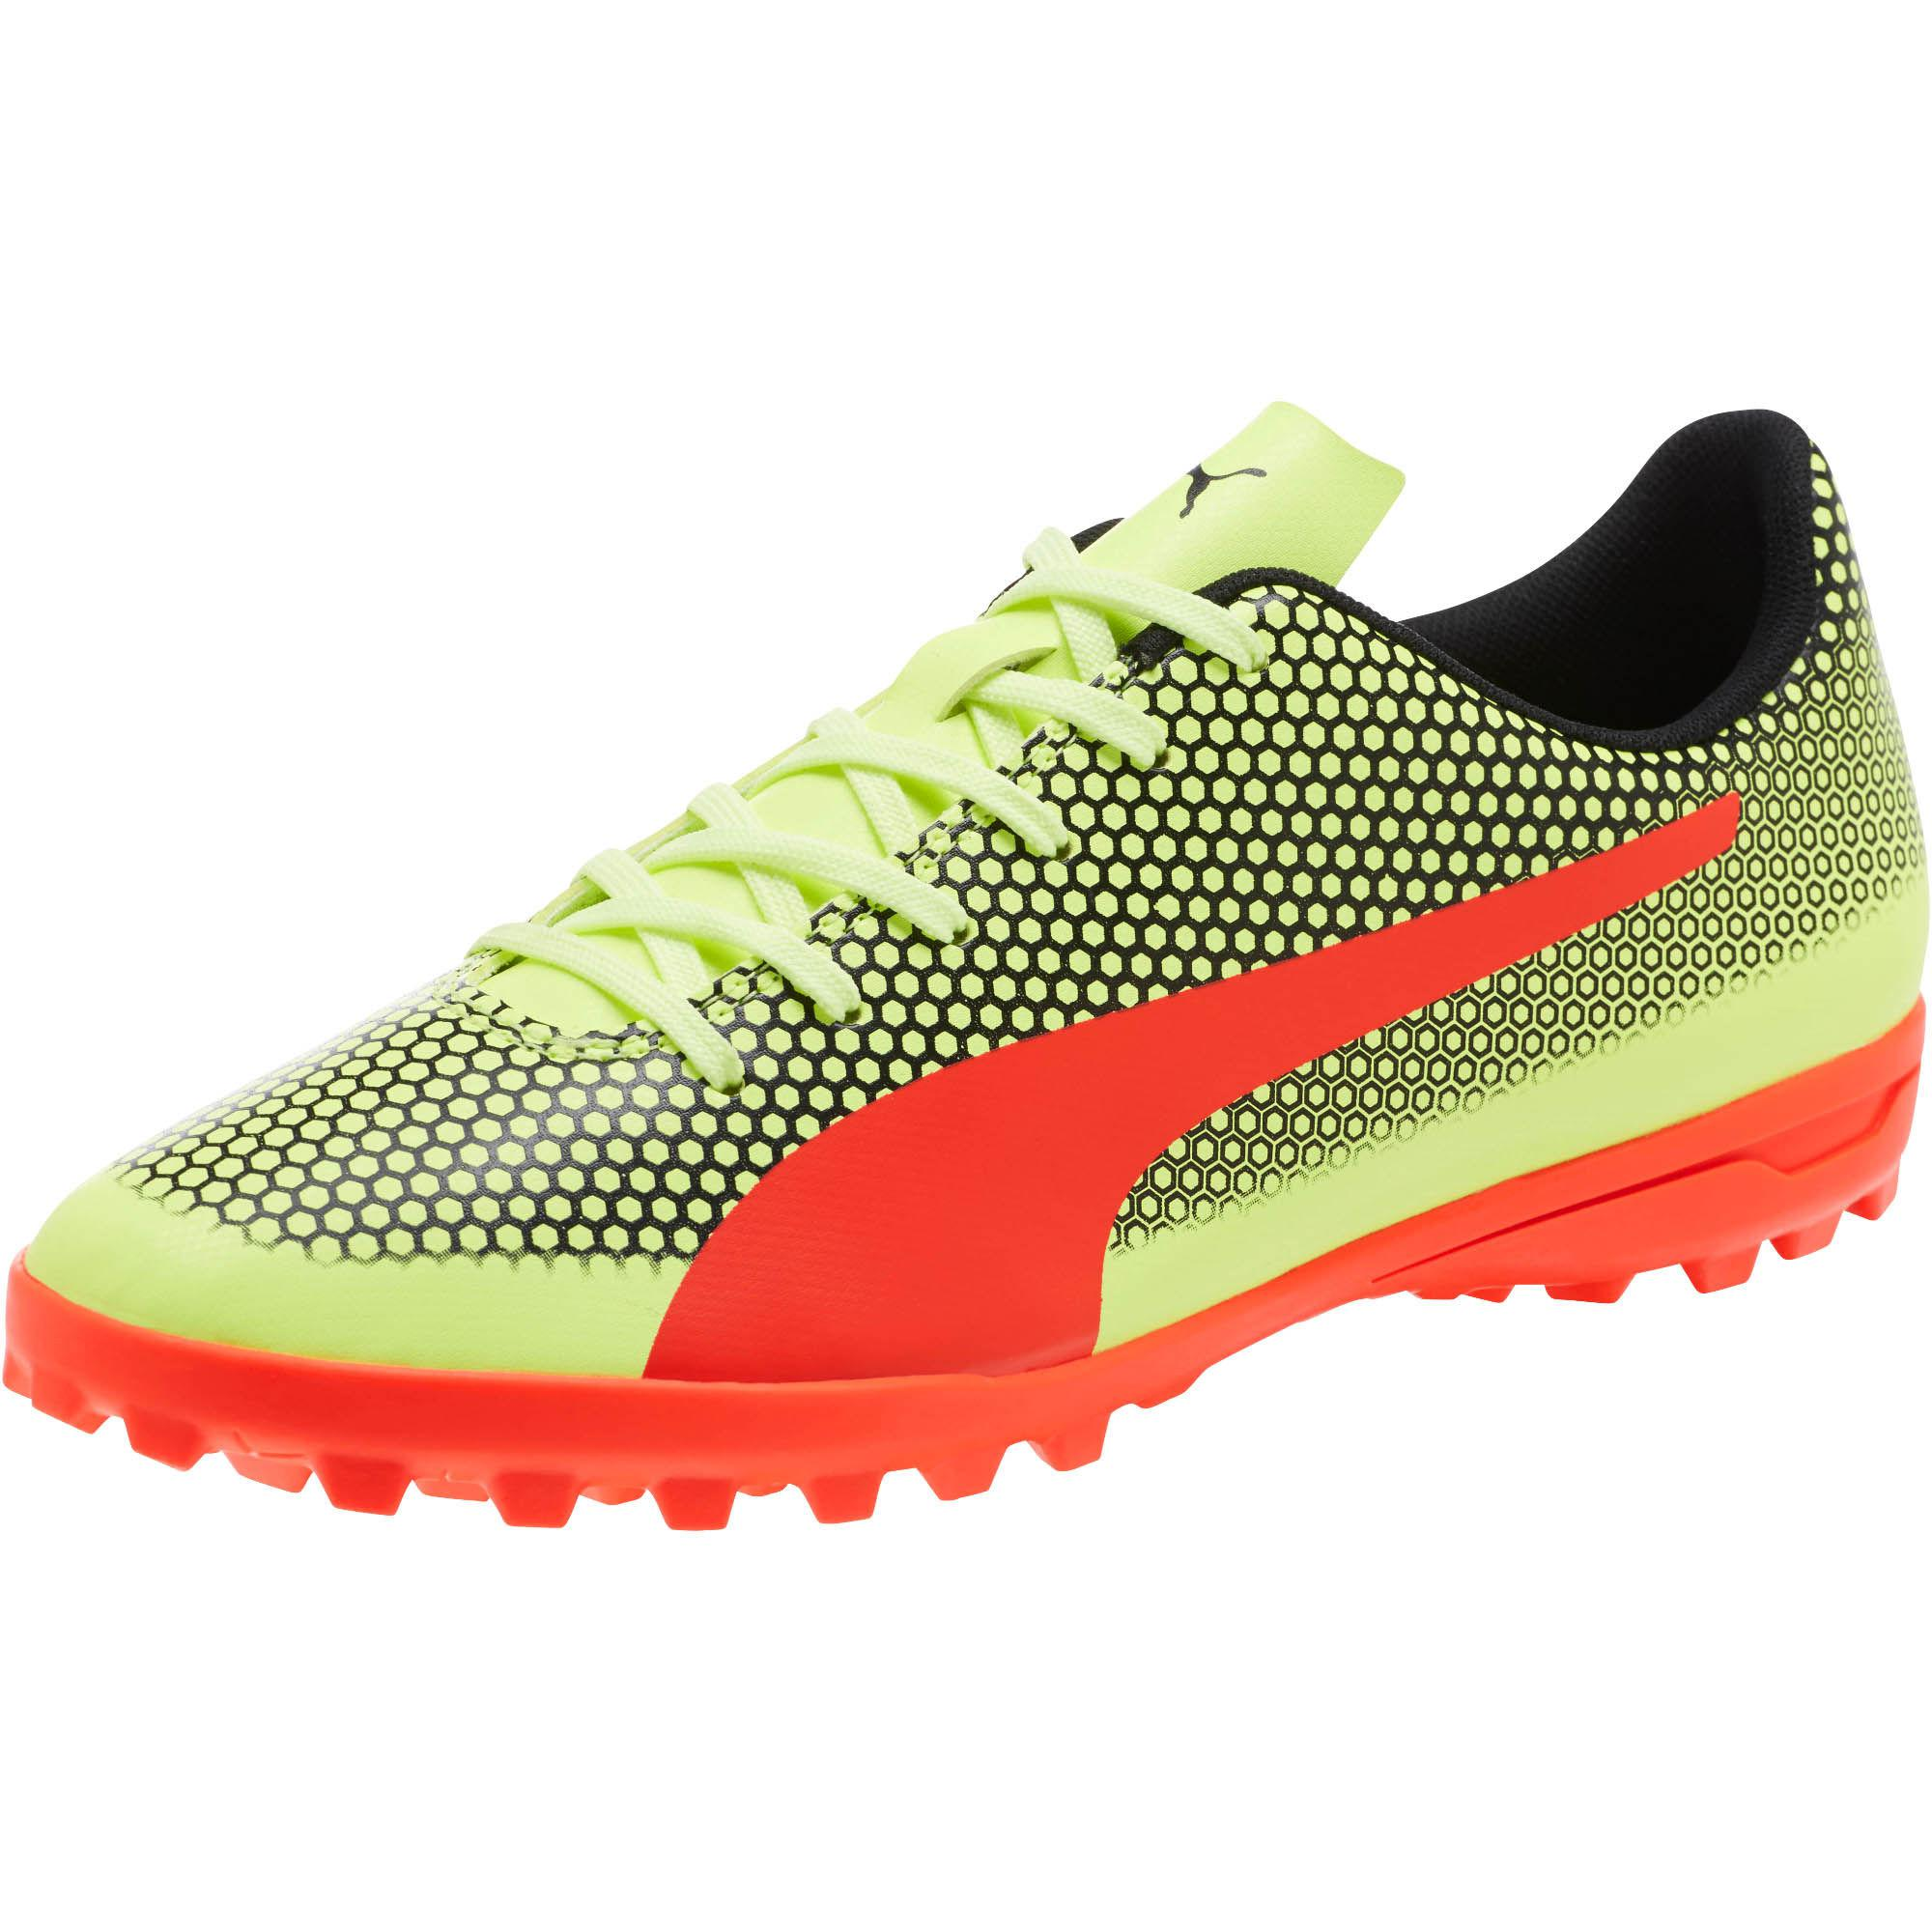 cb6f5a602c9e Lyst - PUMA Spirit Tt Turf Soccer Shoes for Men